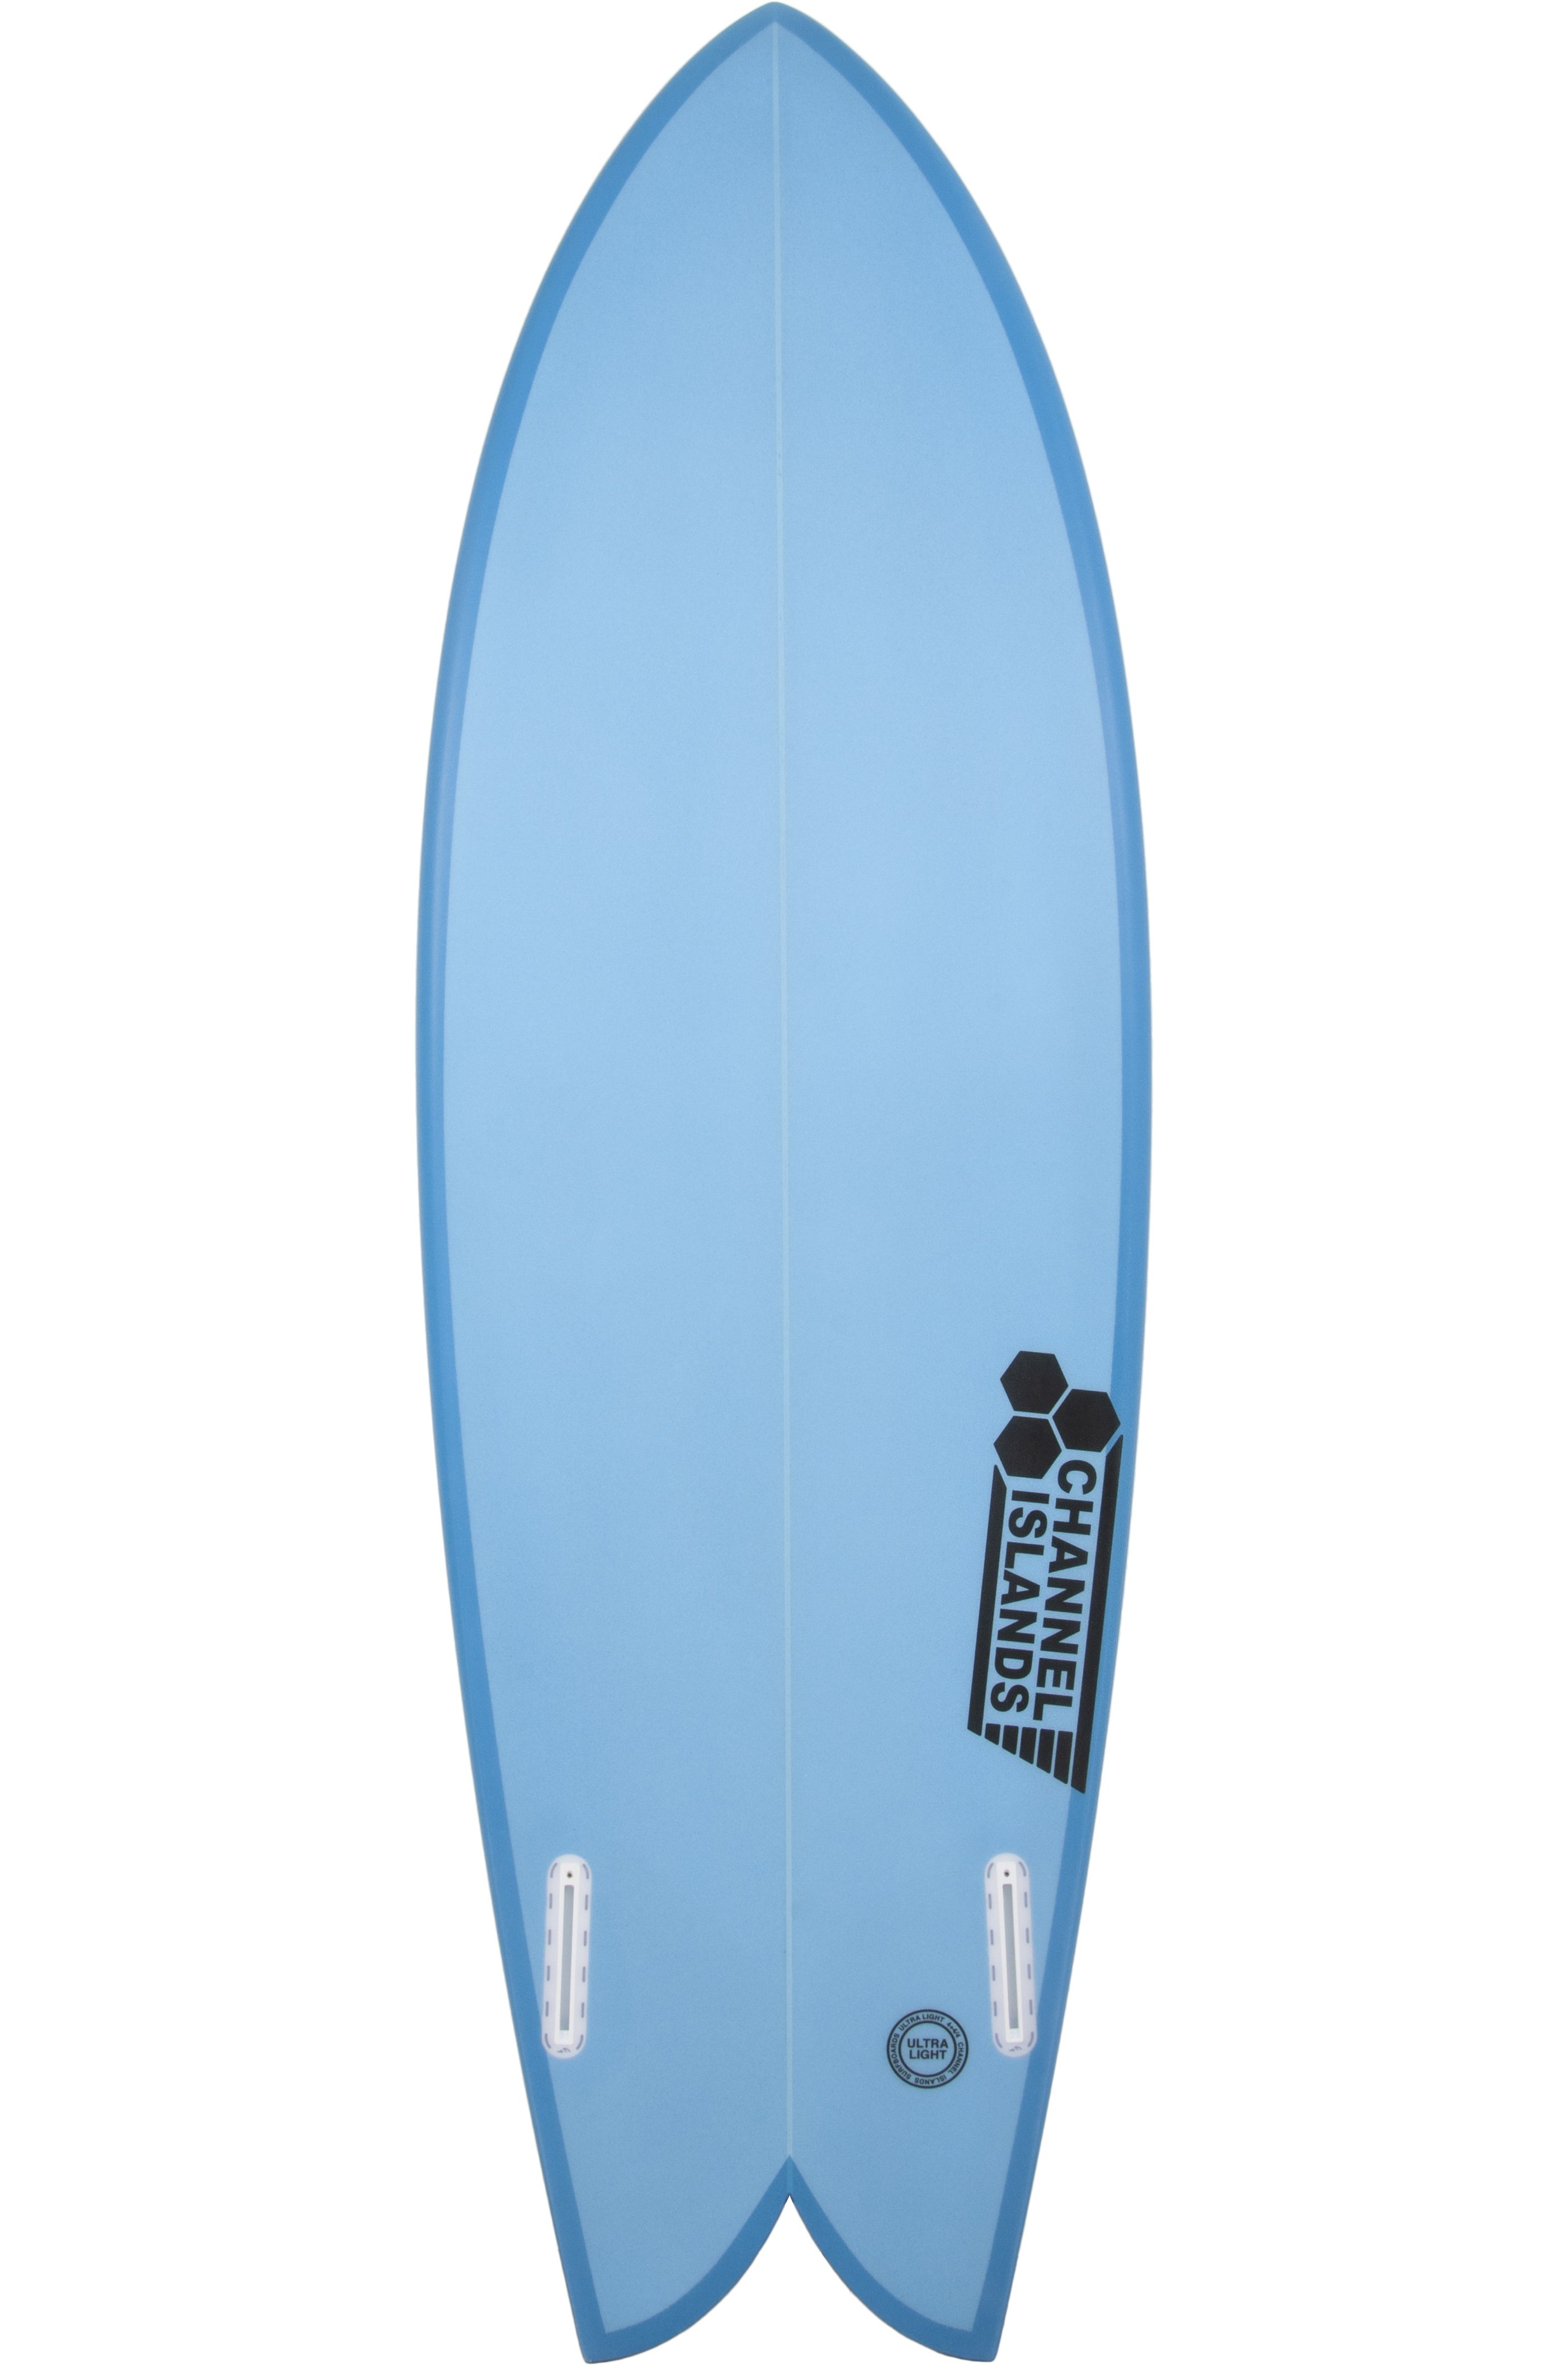 Prancha Surf Al Merrick CI FISH 5'6 Swallow Tail - Color Futures Twin 5ft6